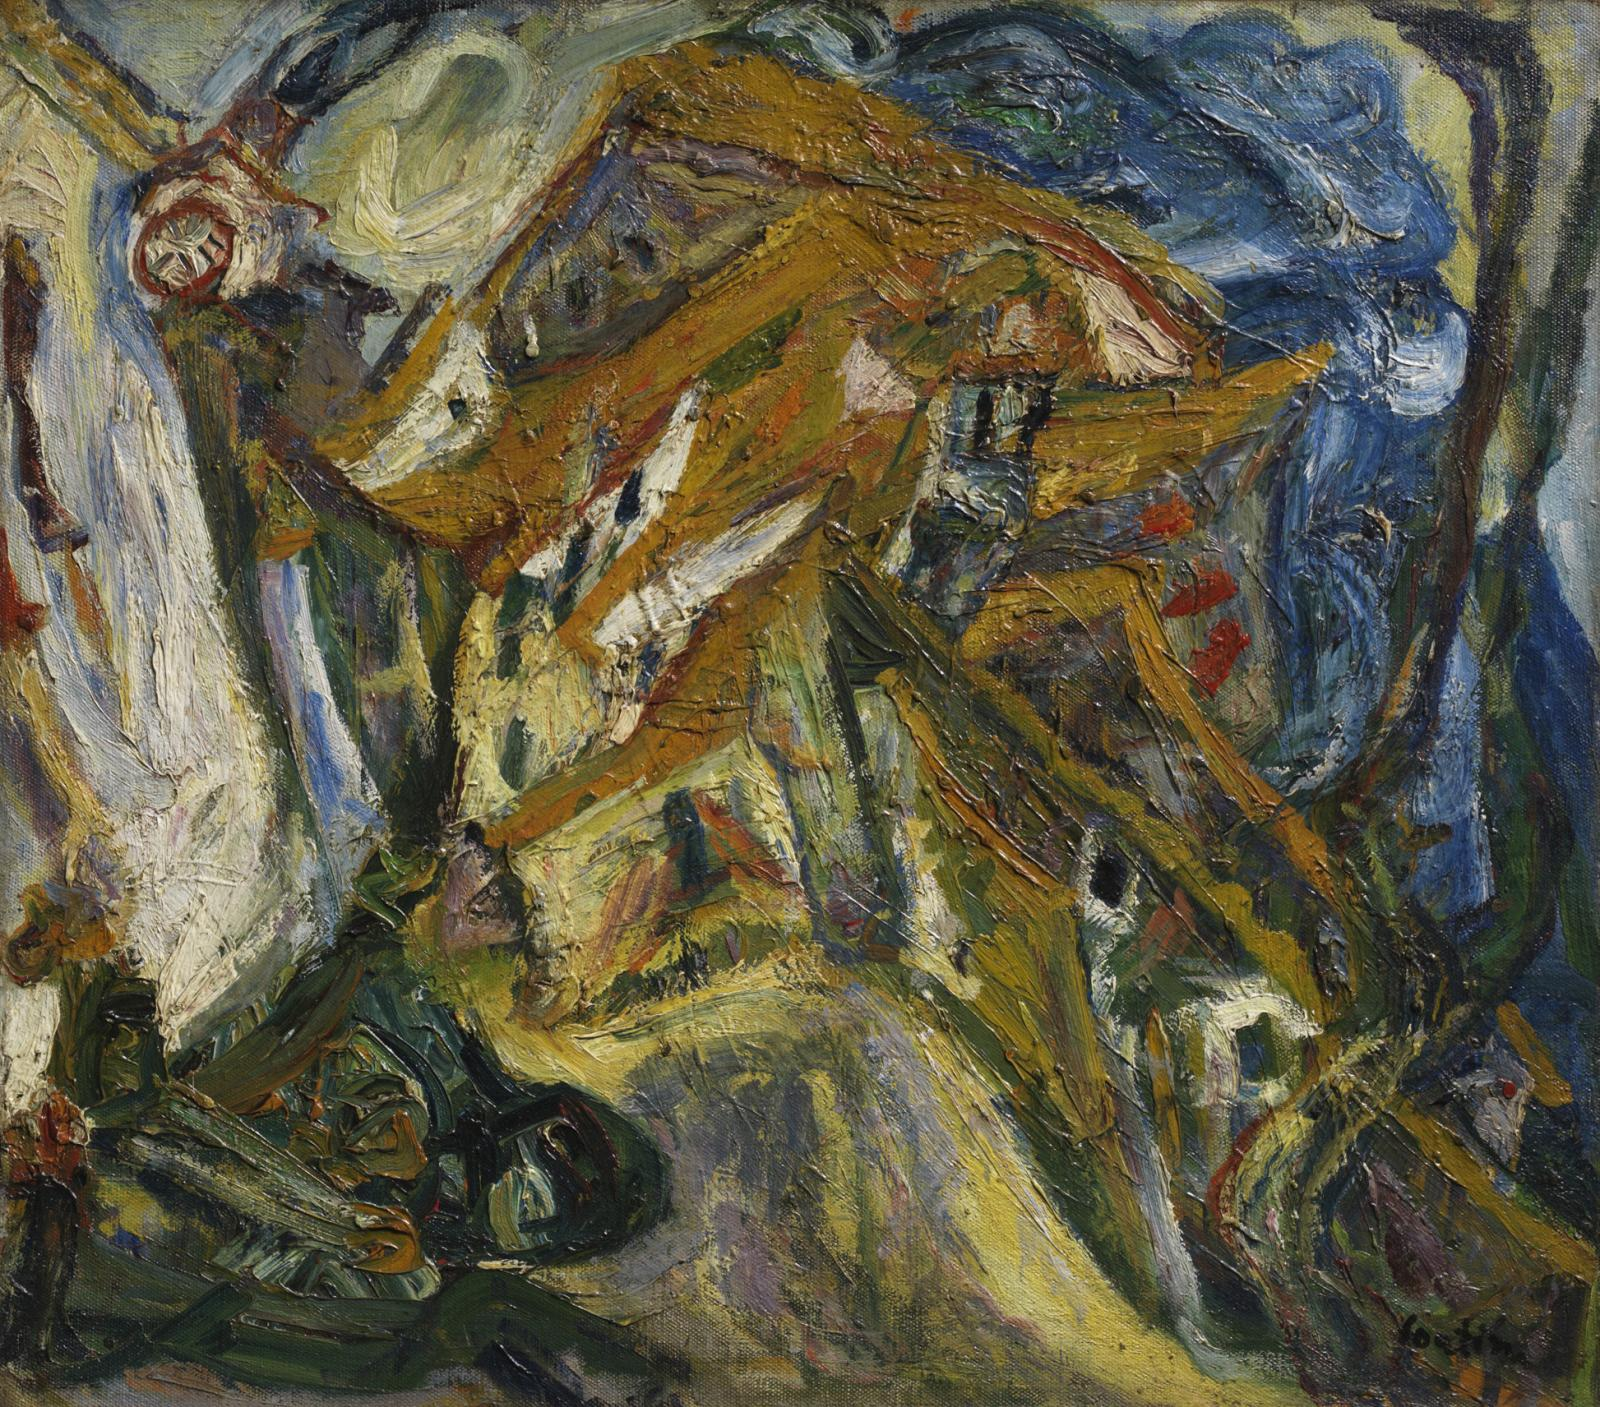 Chaïm Soutine (1893-1943), View of Céret, c. 1921-22, oil on canvas, 74 x 85.7 cm (29 1/8 x 33 3/4 in.)Courtesy of The Henry and Rose Pear